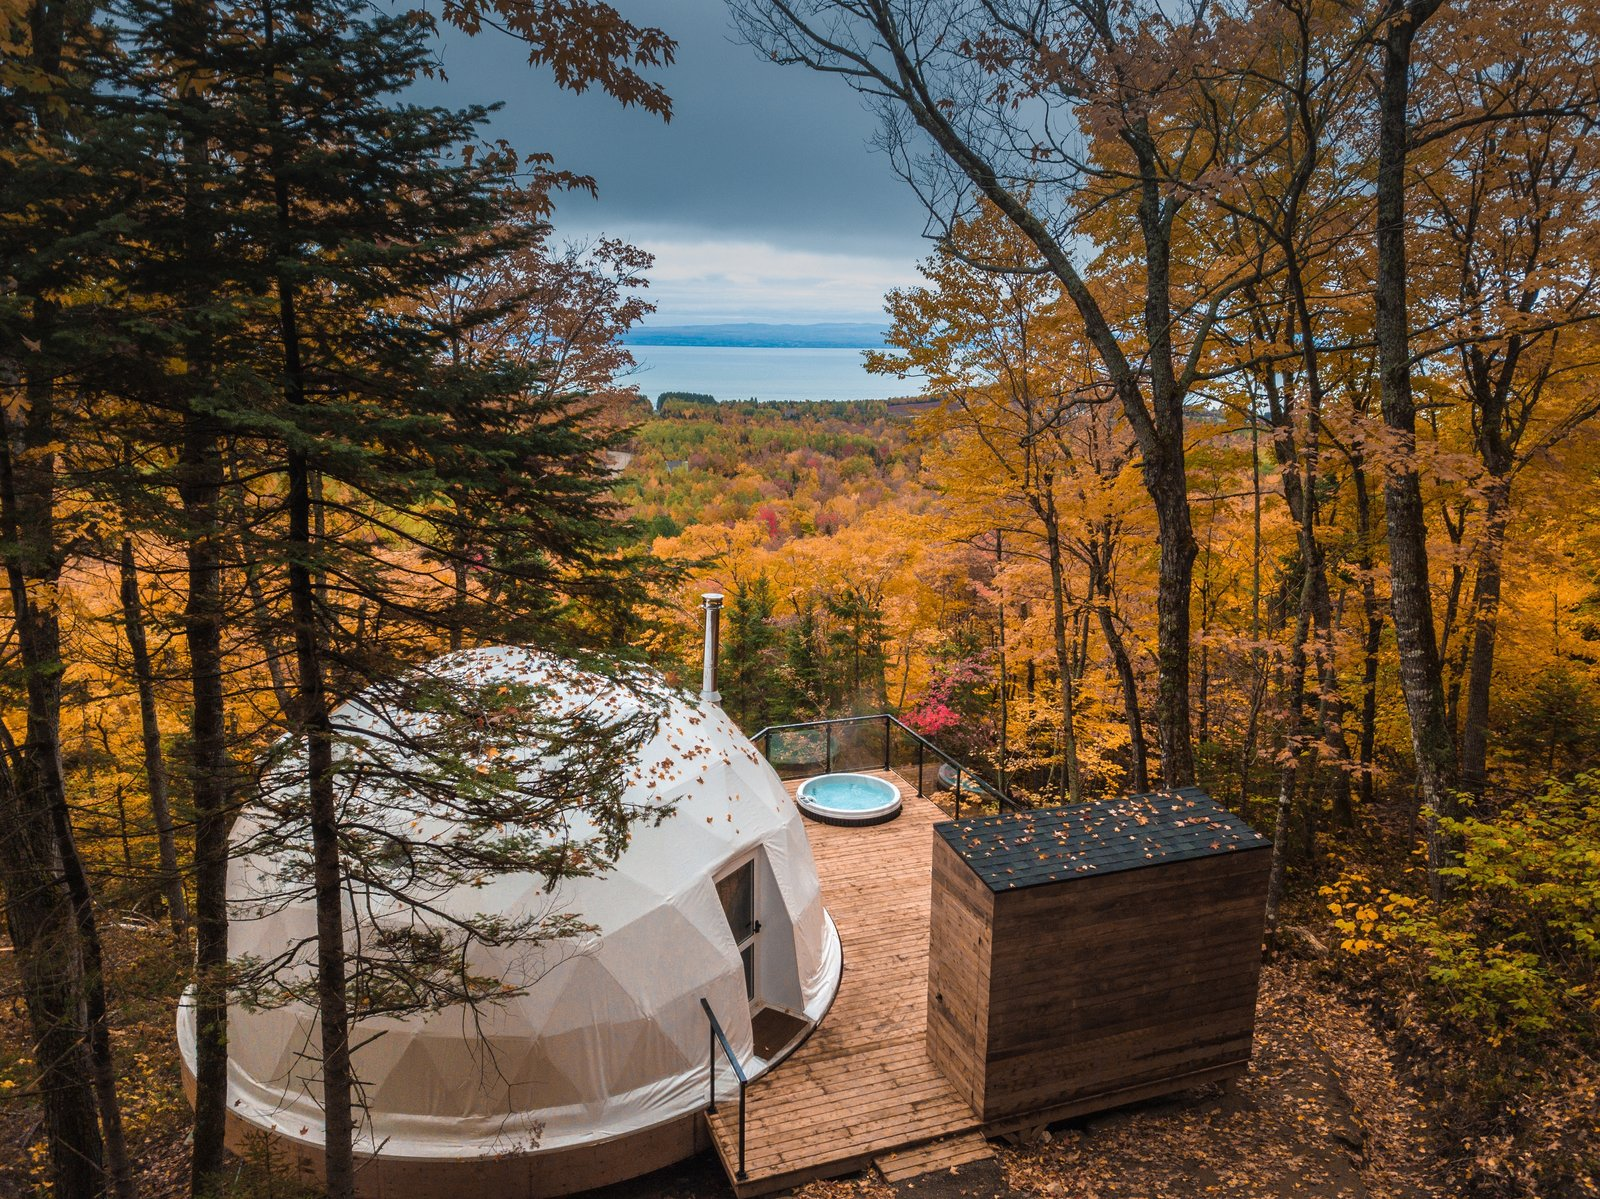 Sleek Geodesic Domes Make Up This Canadian Eco-Retreat